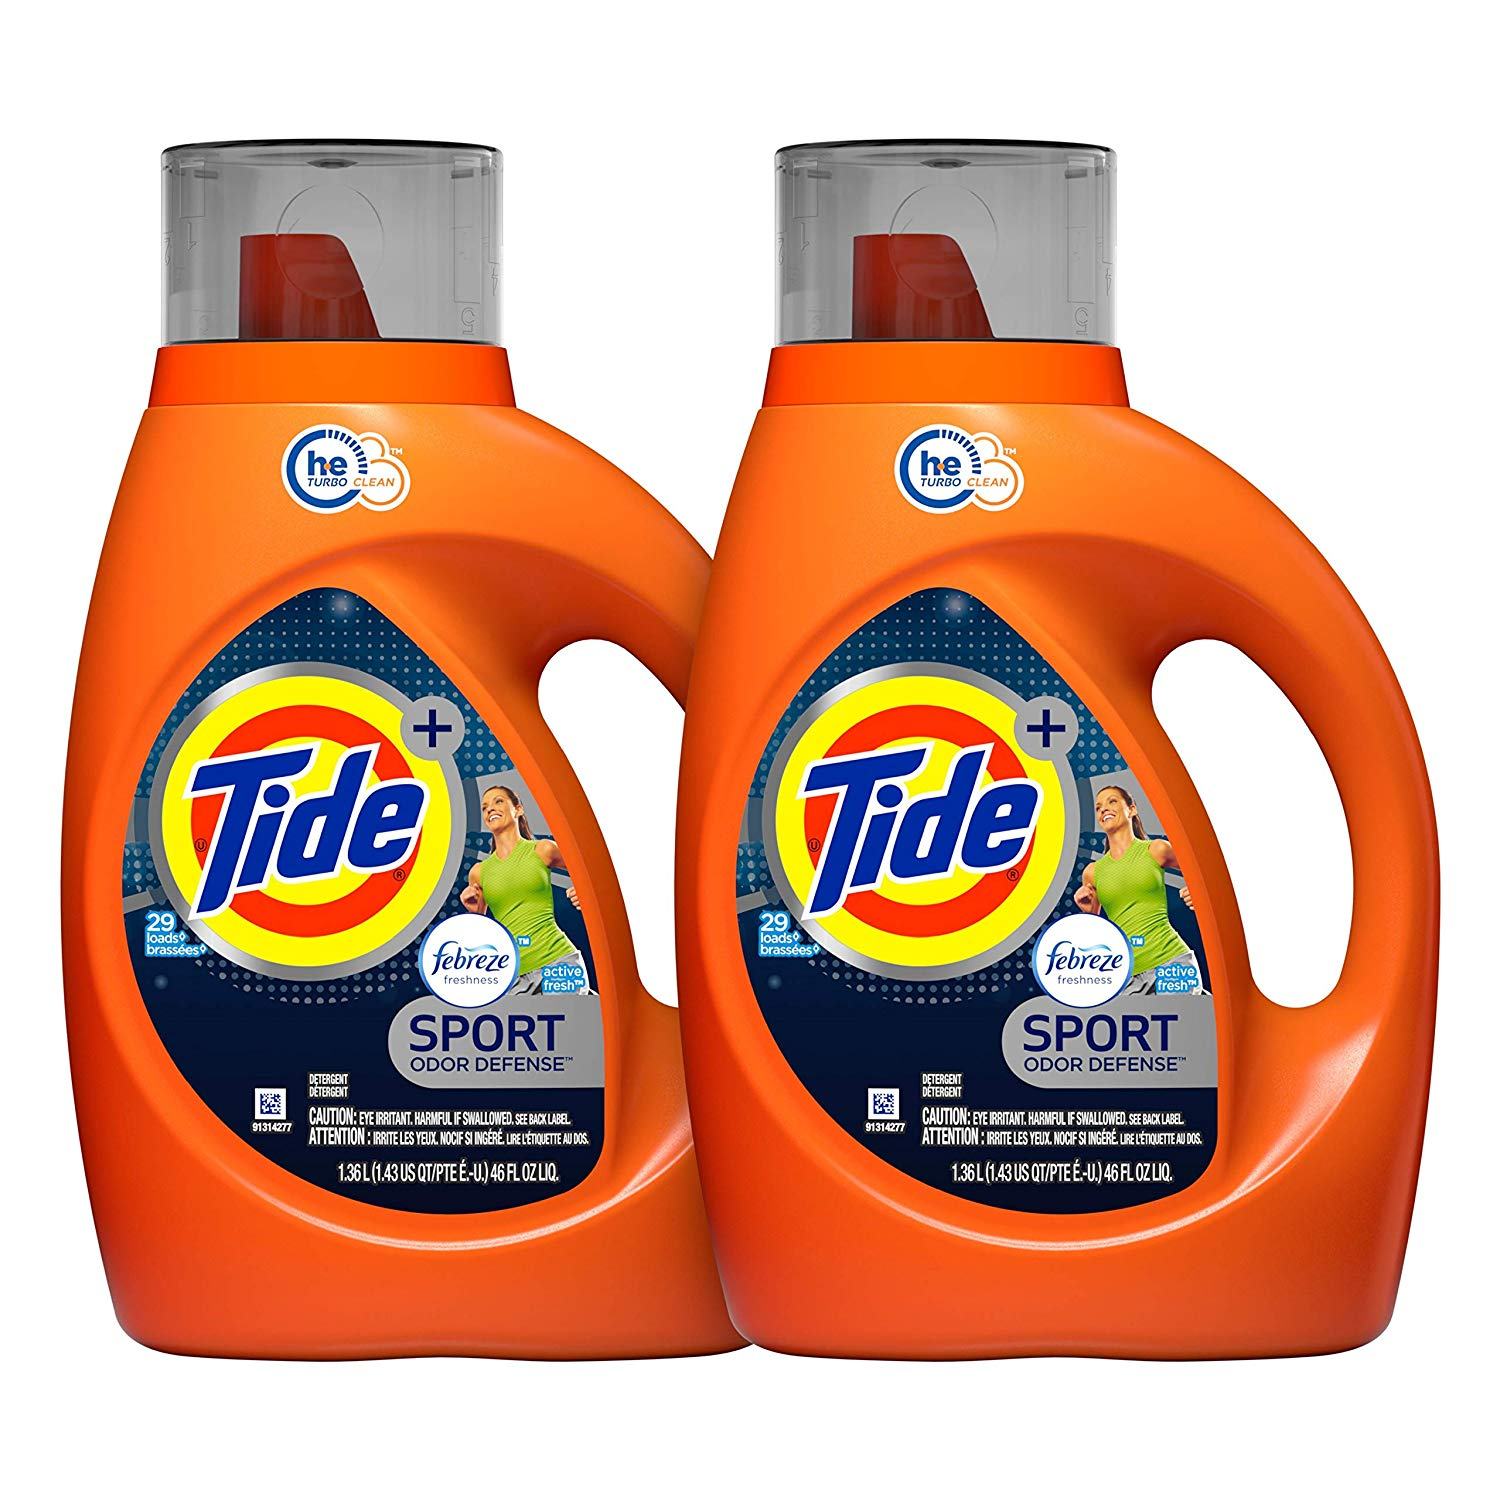 Tide Plus Febreze Laundry Detergent